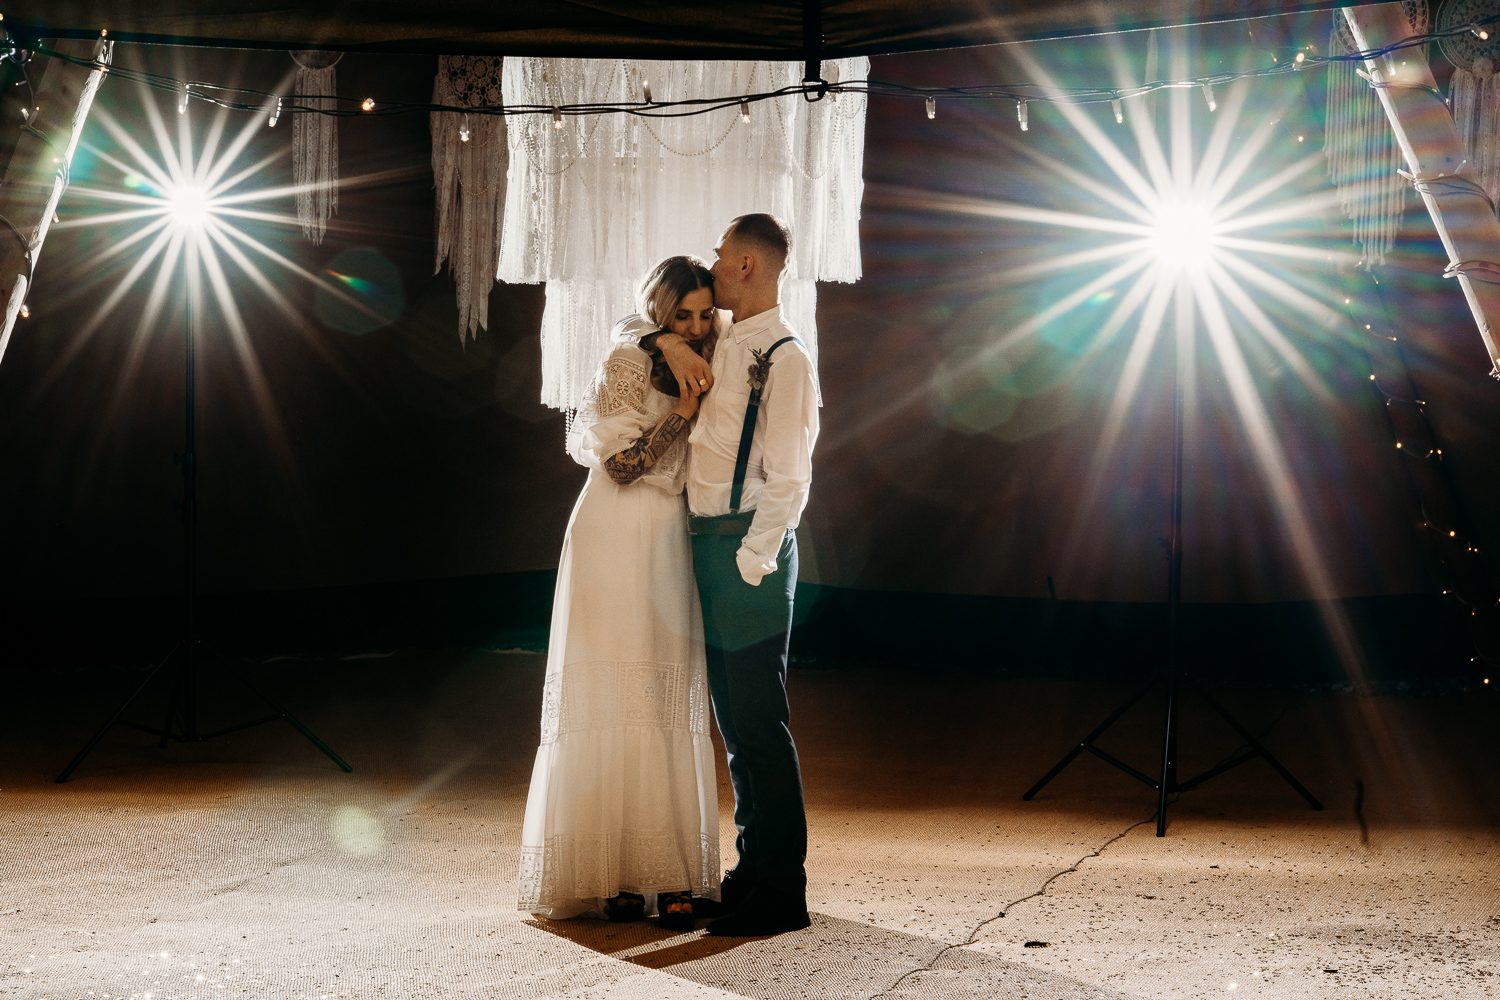 BRIDE AND GROOM AT FIRST DANCE IN TIPI